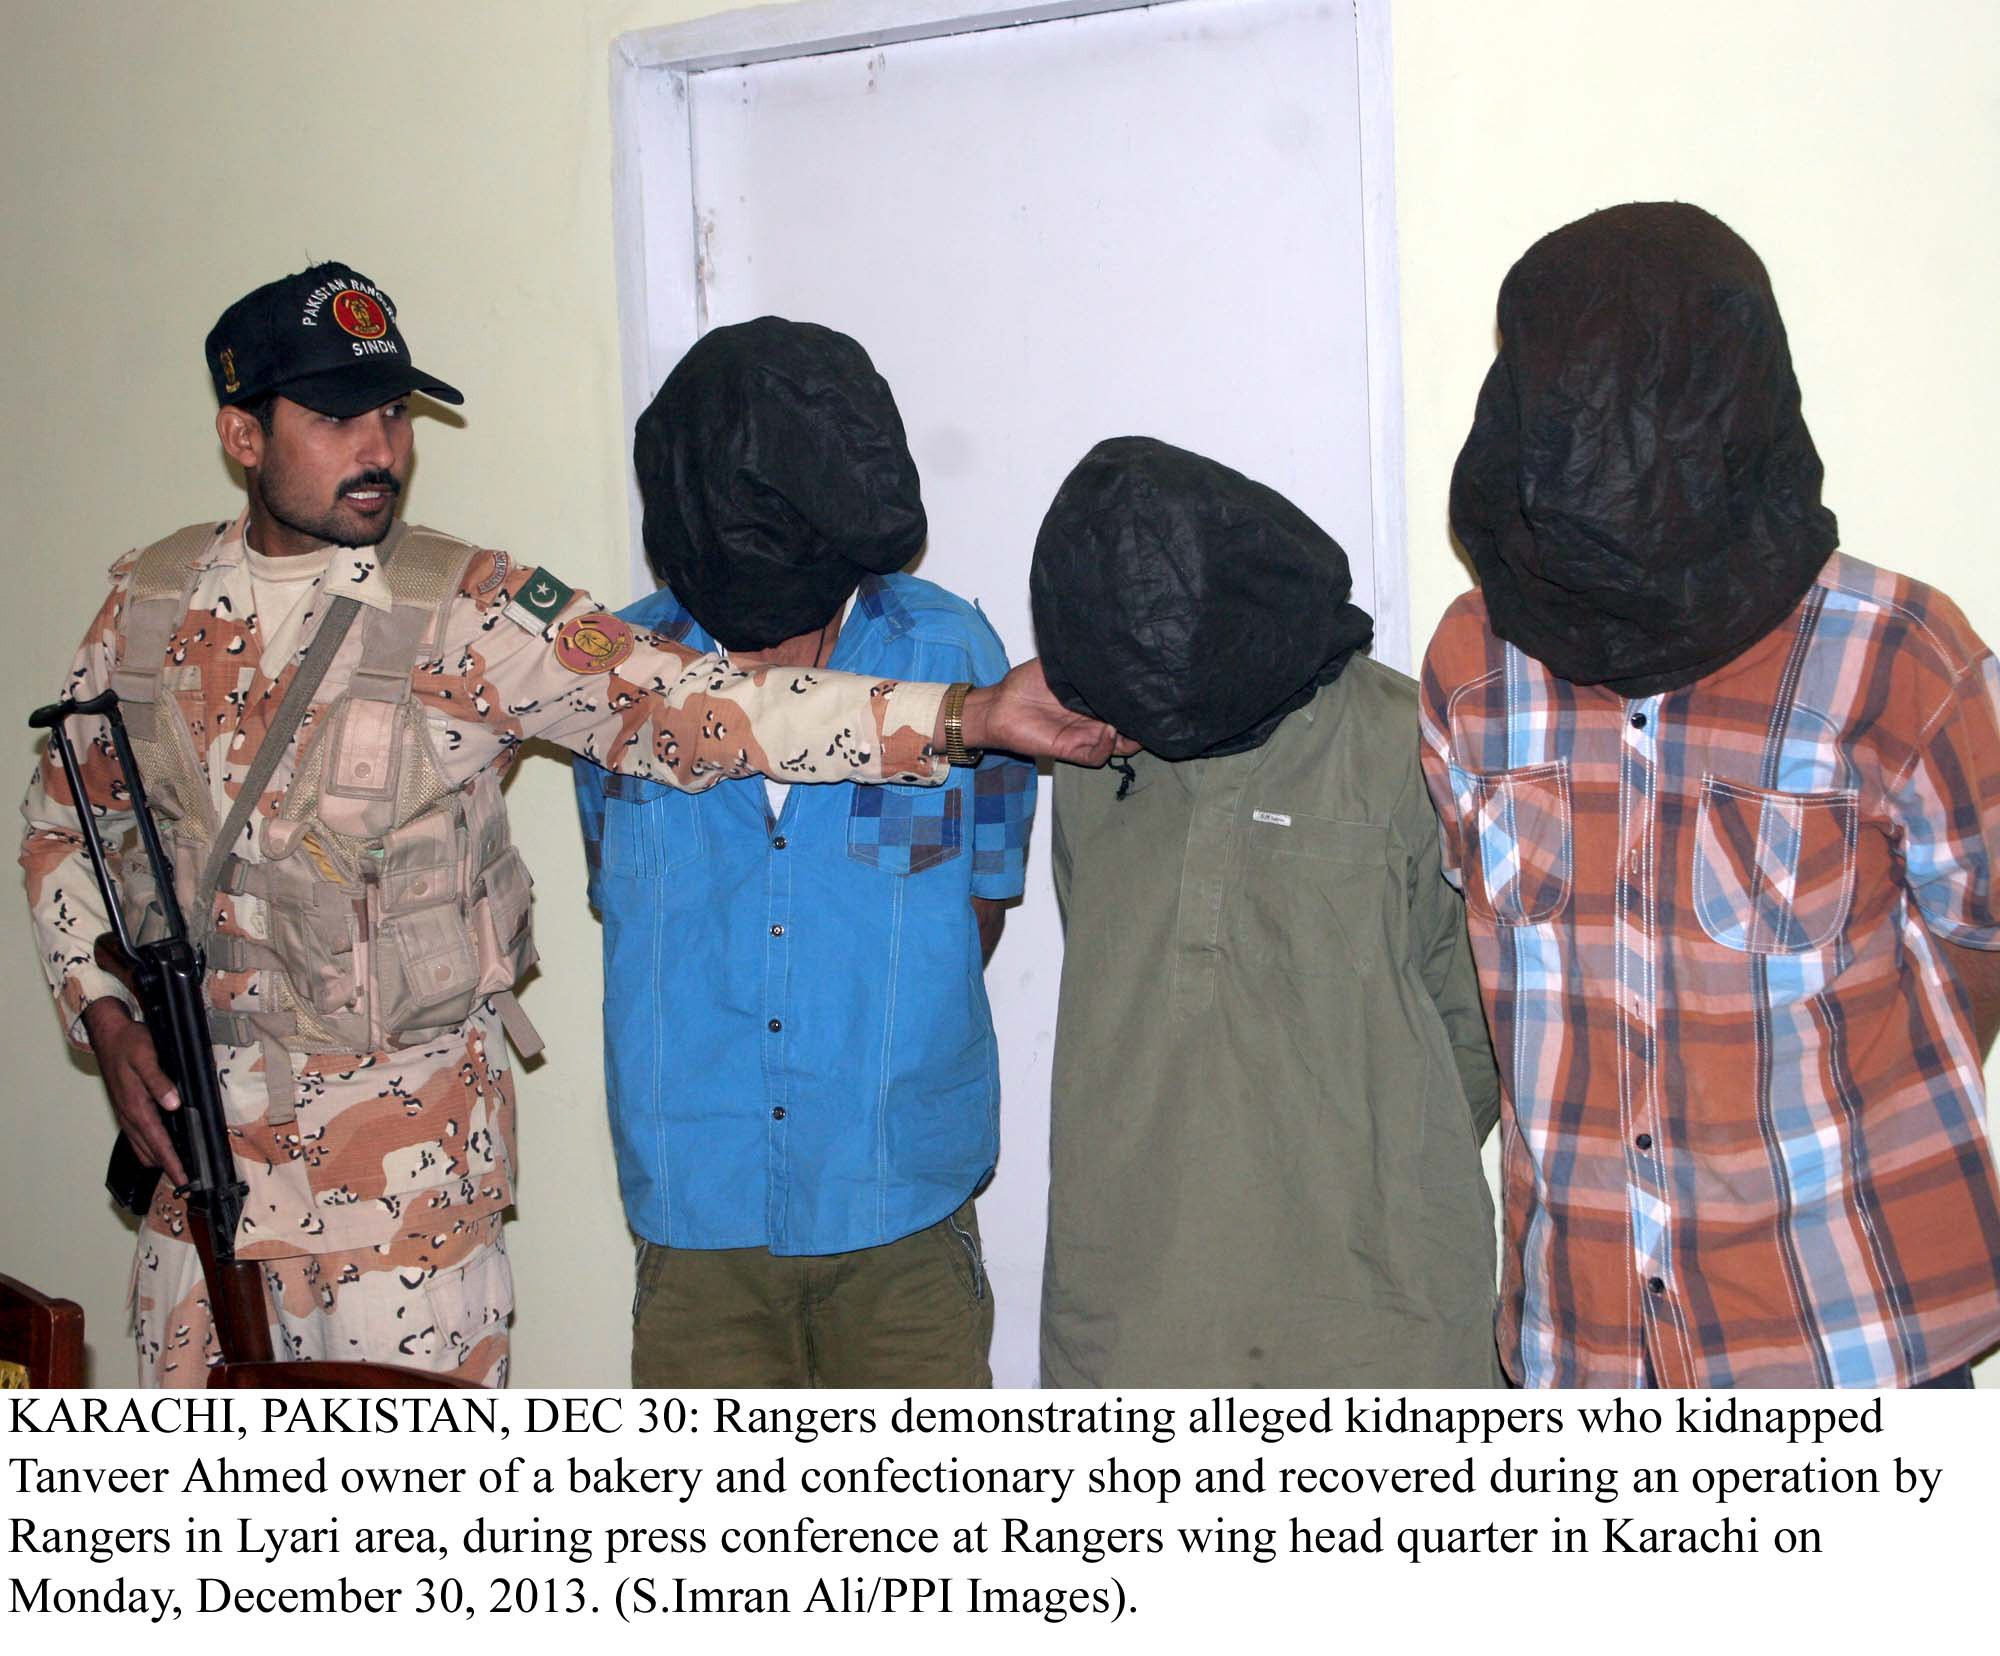 rangers-suspects-arrested-terrorists-target-killers-kidnappers-arrest-photo-ppi-2-3-2-2-2-2-2-2-2-2-2-3-2